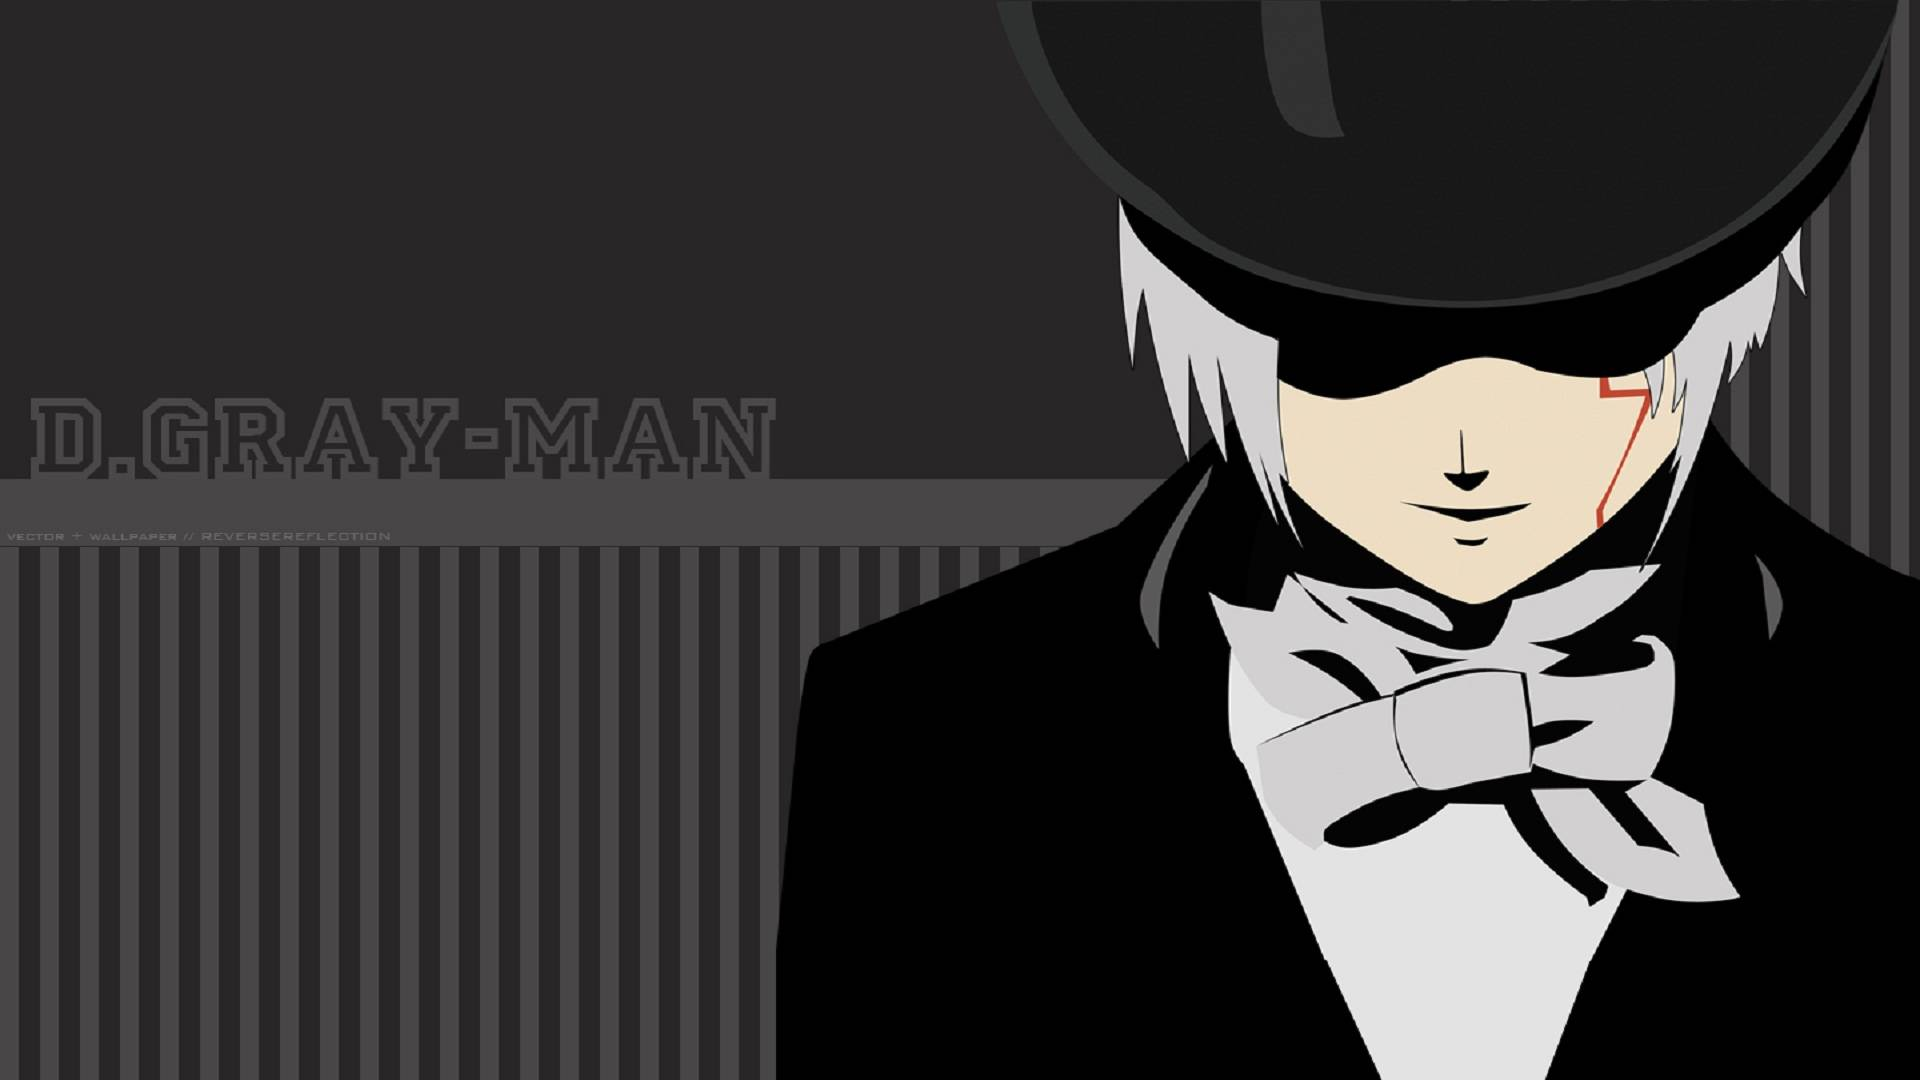 dgrayman wallpapers wallpaper cave